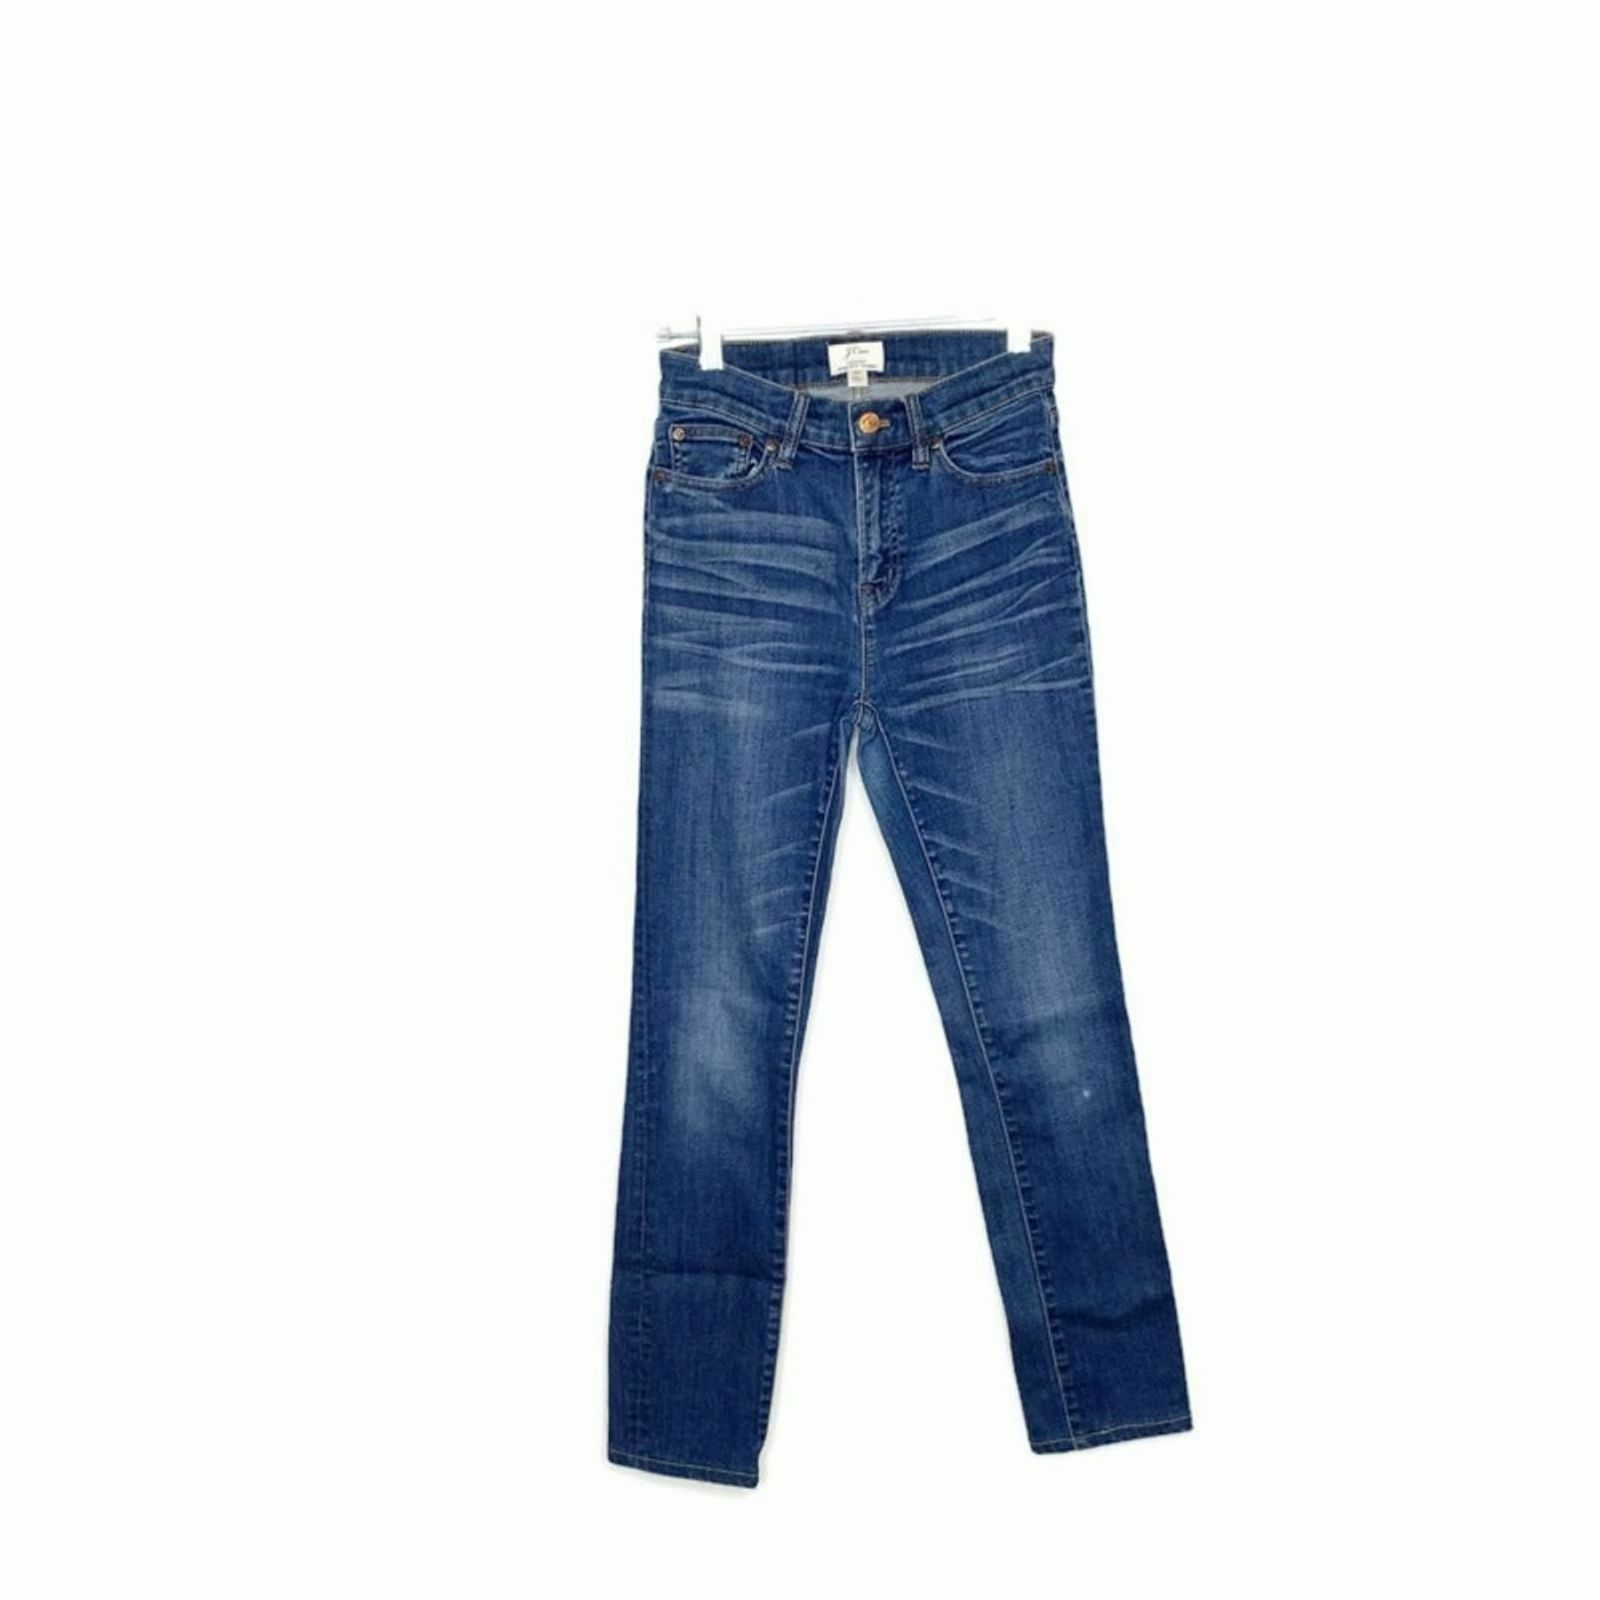 J. Crew Lookout High Rise Skinny Jean Travers Wash - image 2